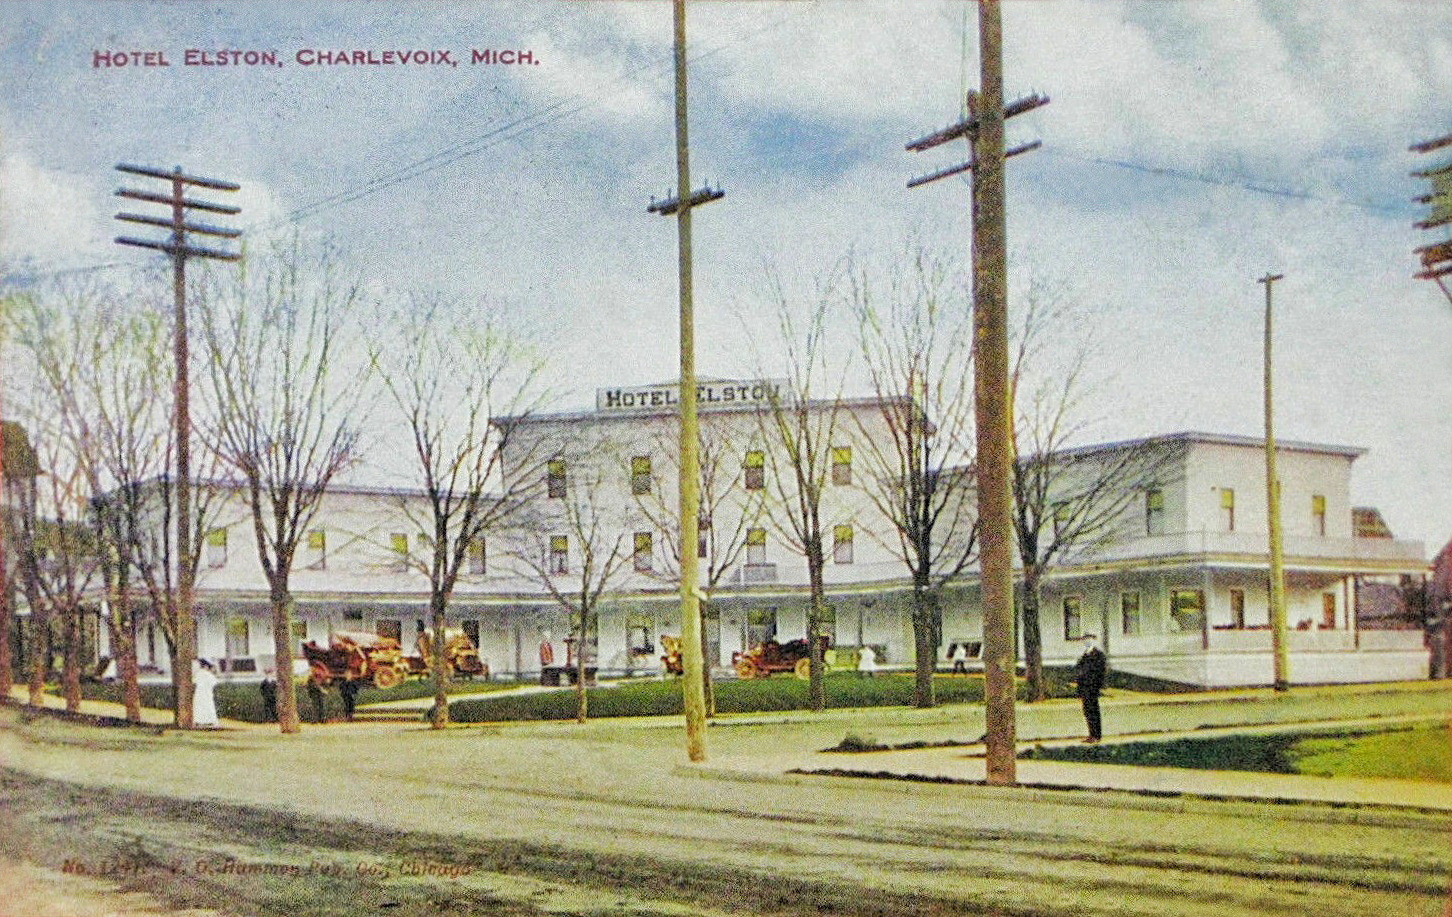 HOTEL ELSTON 1908-CHARLEVOIX MICHIGAN